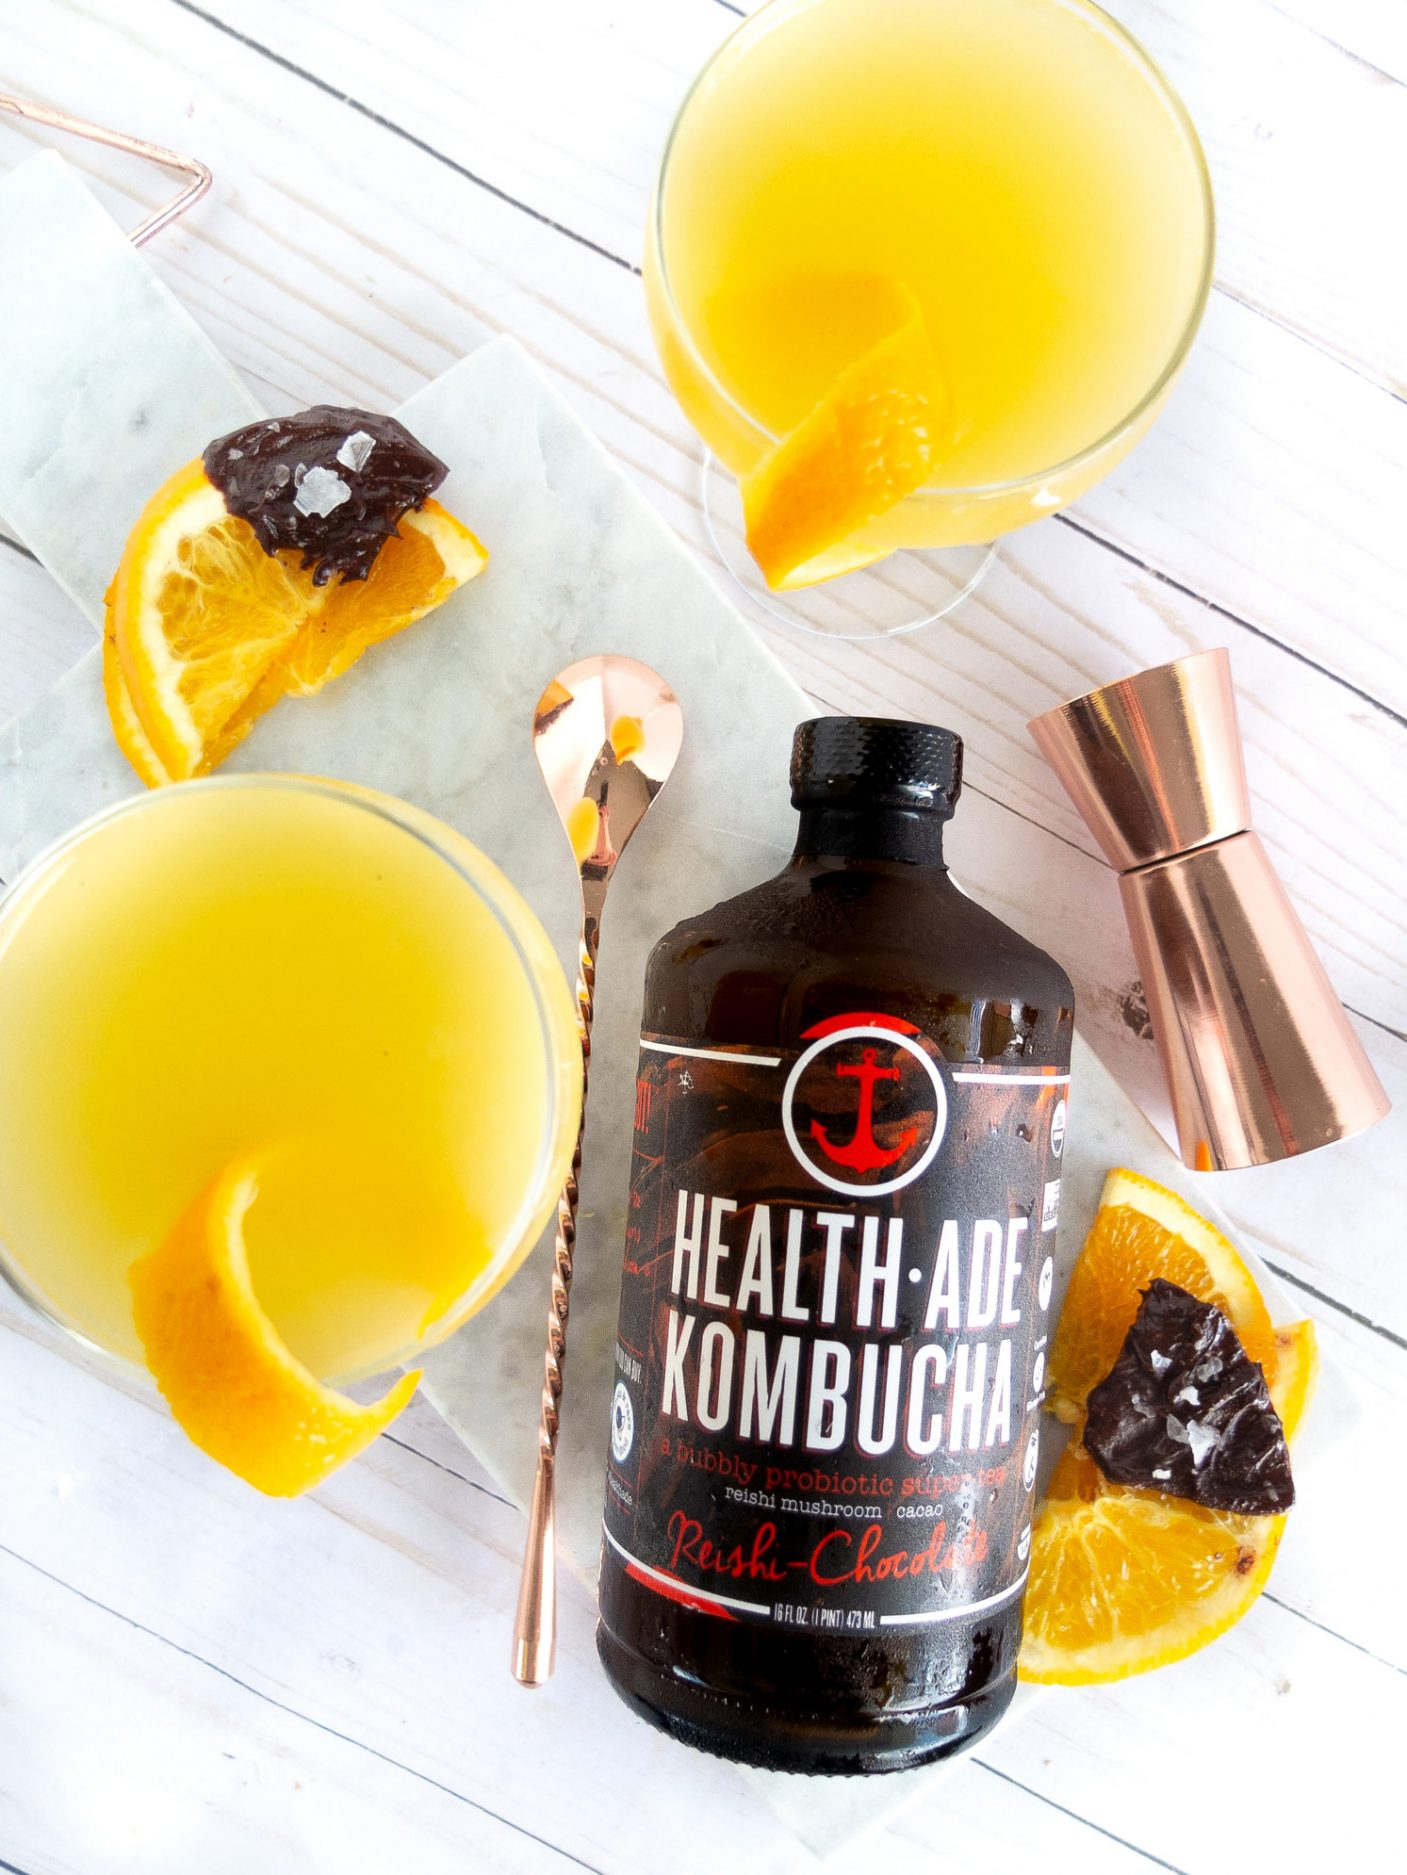 This Choc Orange Fizz is a kombucha cocktail that is the perfect balance of orange and chocolate for a healthier cocktail option. This dreamy drink is sweet, tart, and a whole lot of bubbly with Health-Ade Kombucha's Reishi-Chocolate. Elle Talk #kombucha #kombuchacocktail #cocktail #cocktails #cocktailrecipe